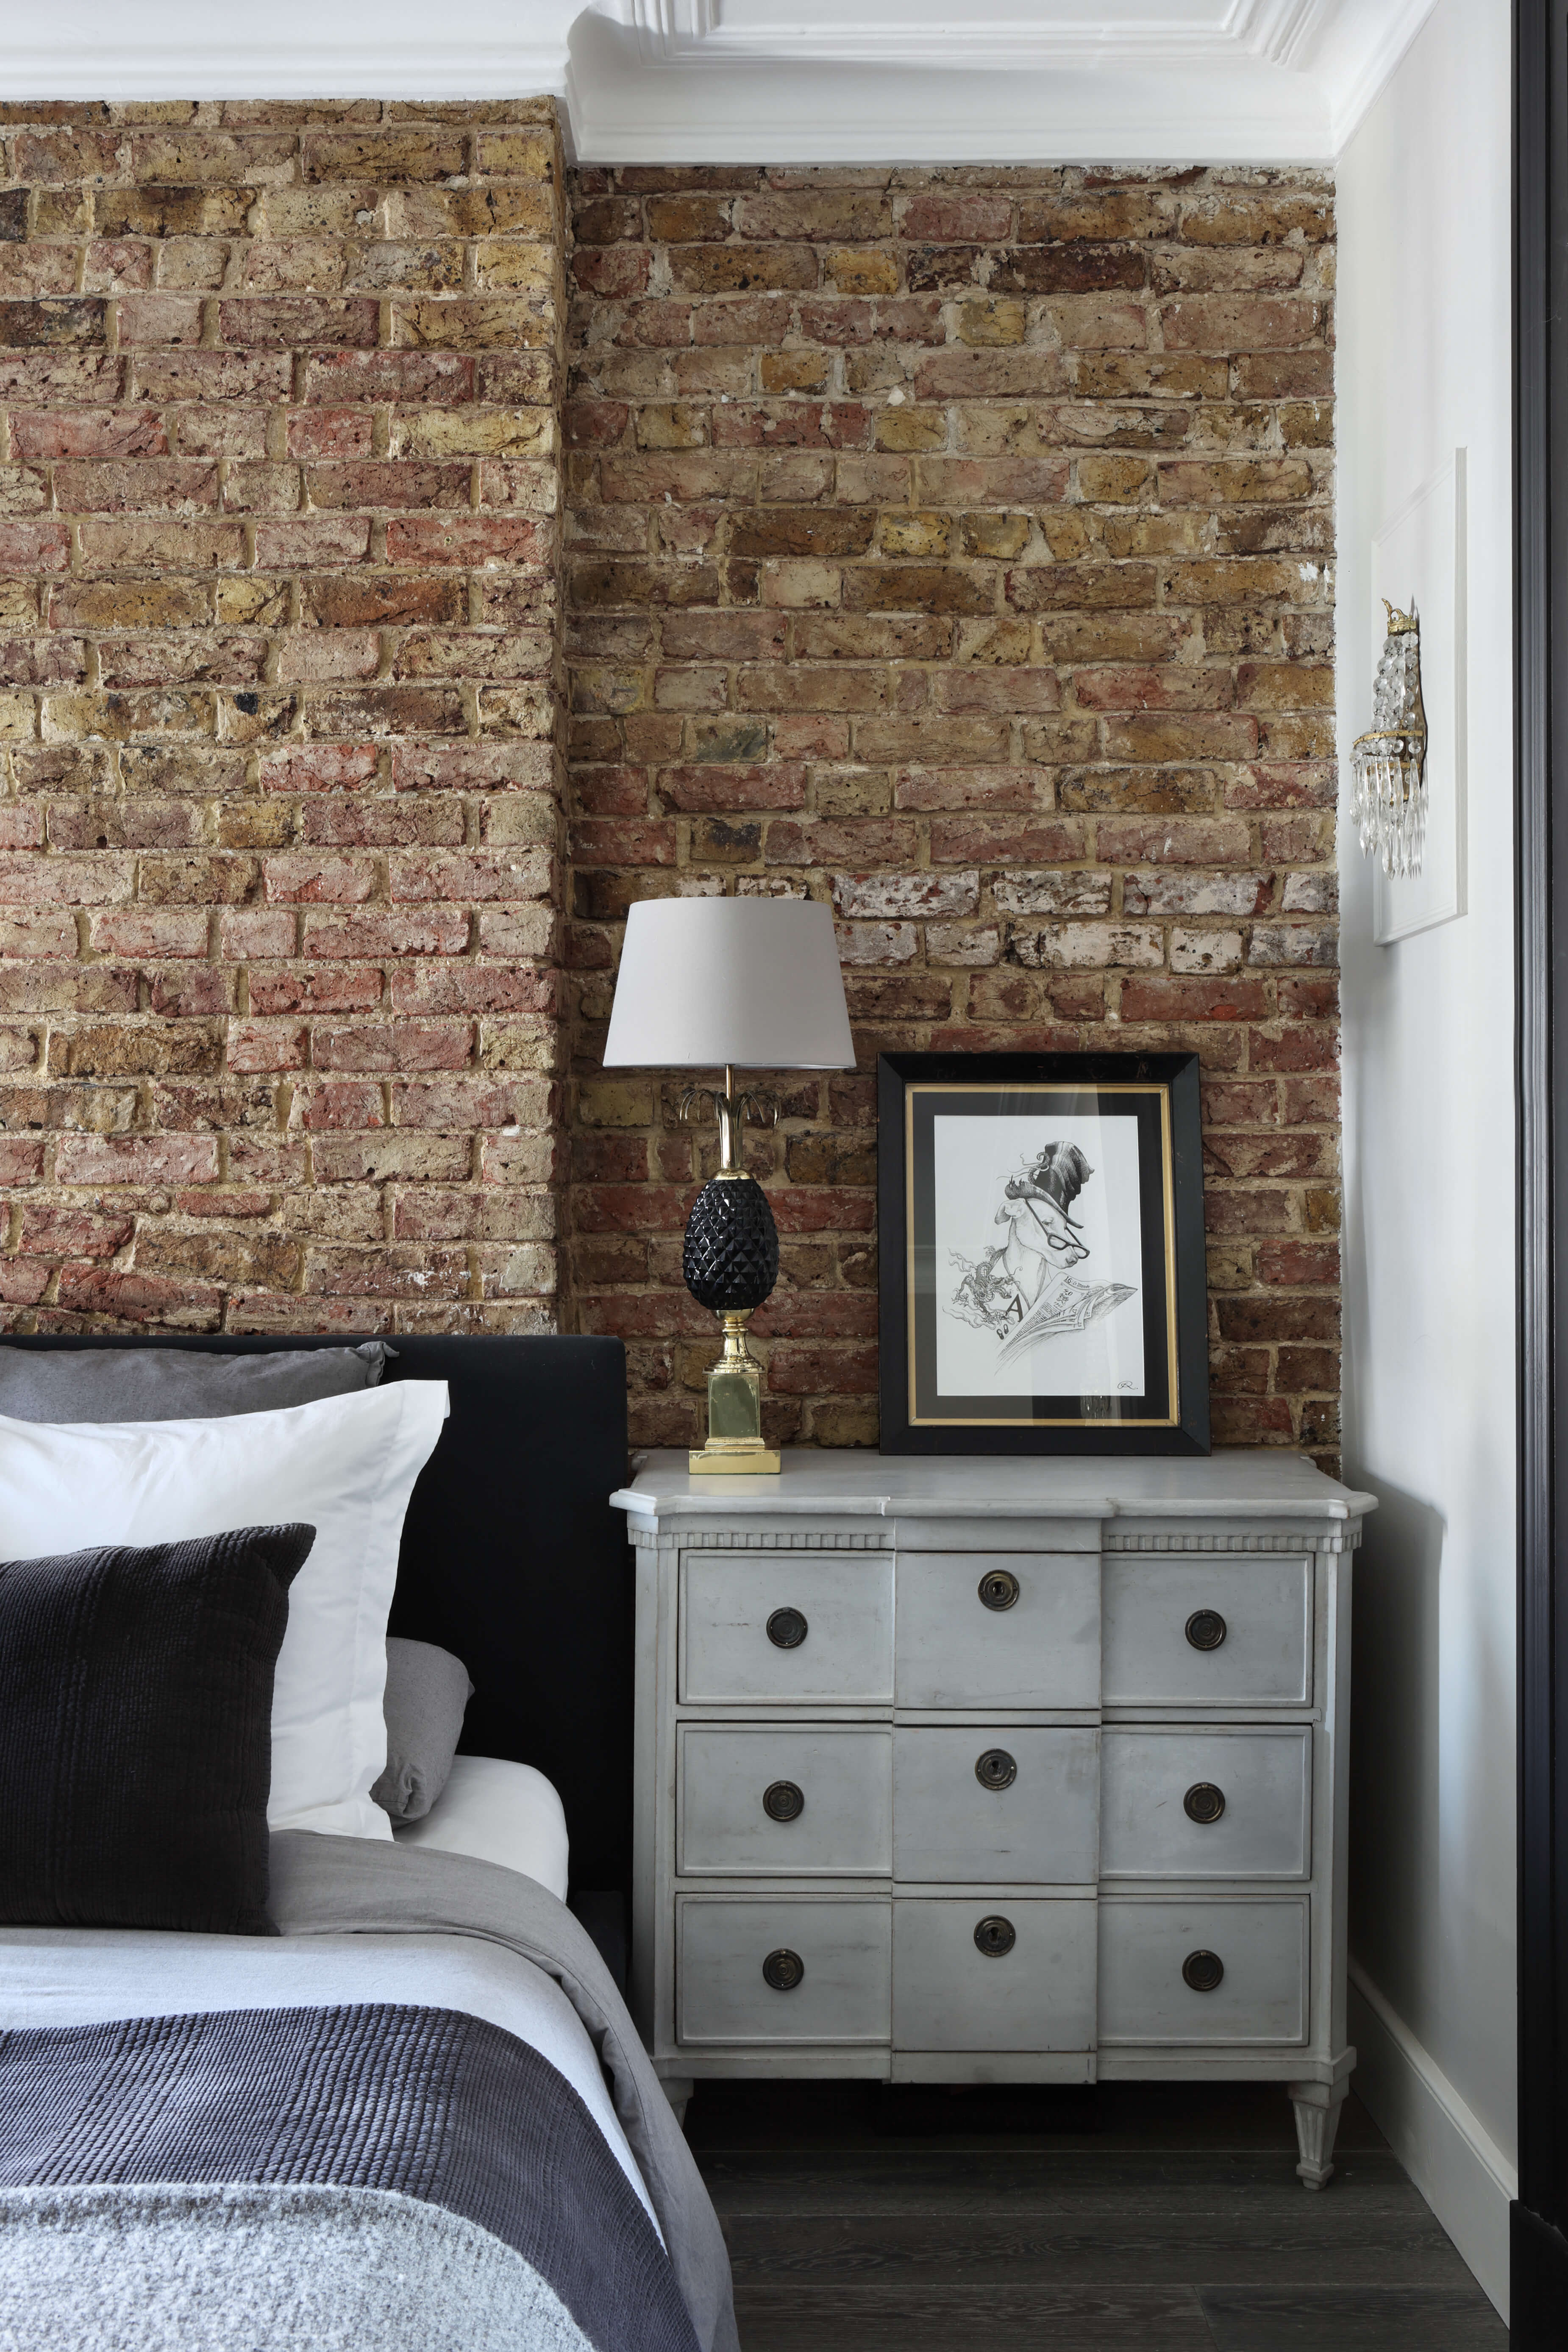 Exposed brickwork and bedside lamp